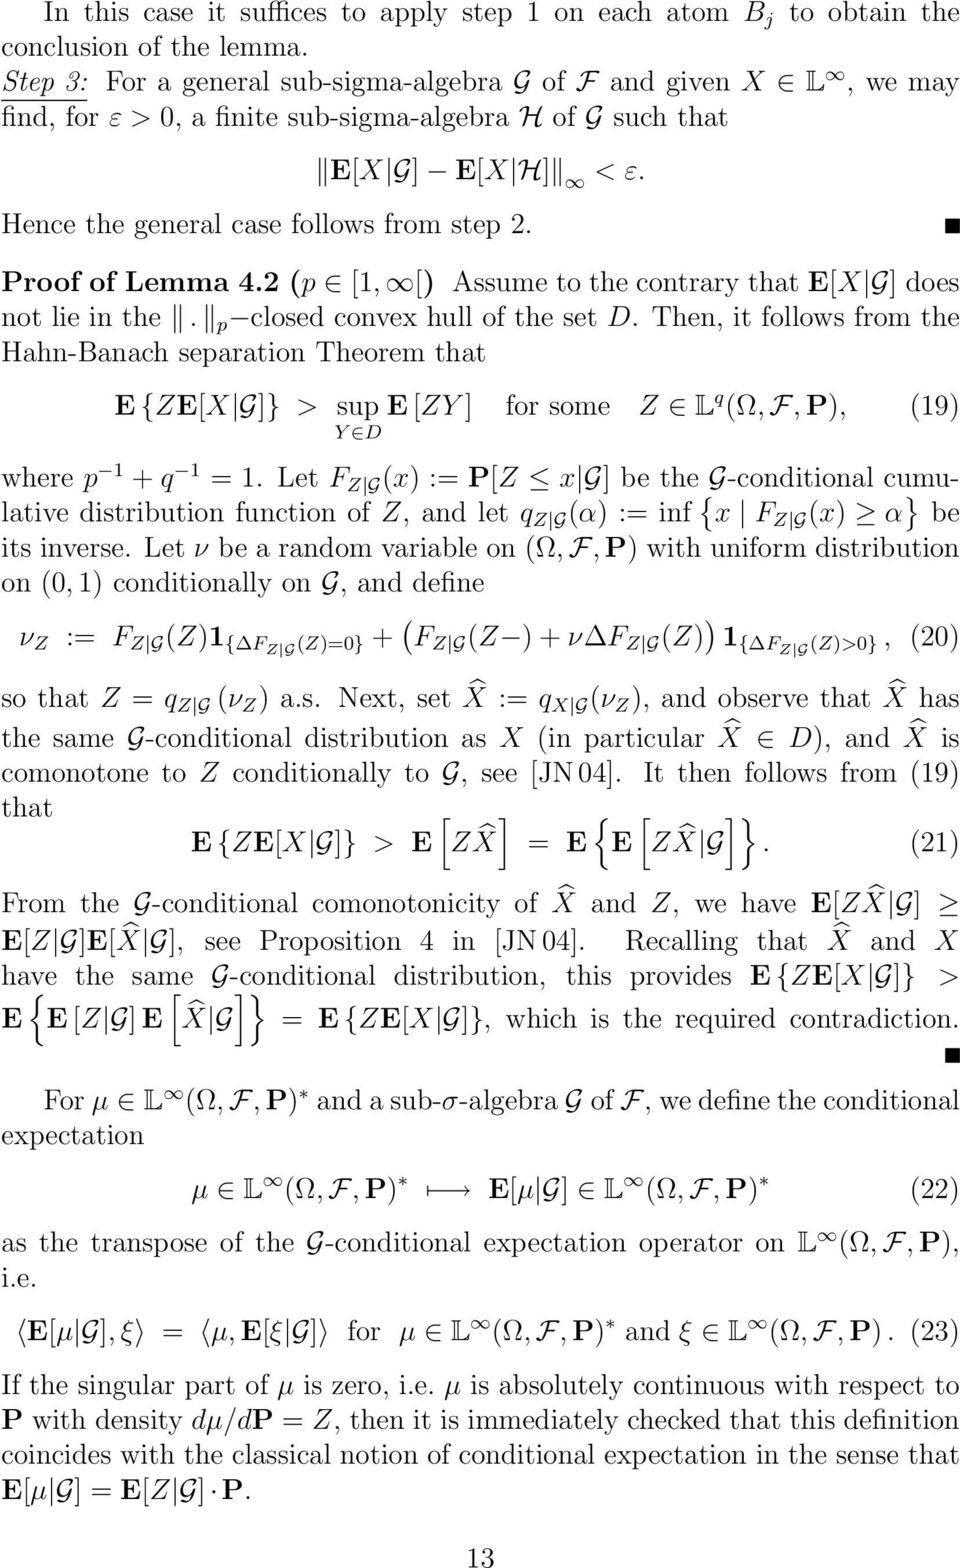 Proof of Lemma 4.2 (p [1, [) Assume to the contrary that E[X G] does not lie in the. p closed convex hull of the set D.